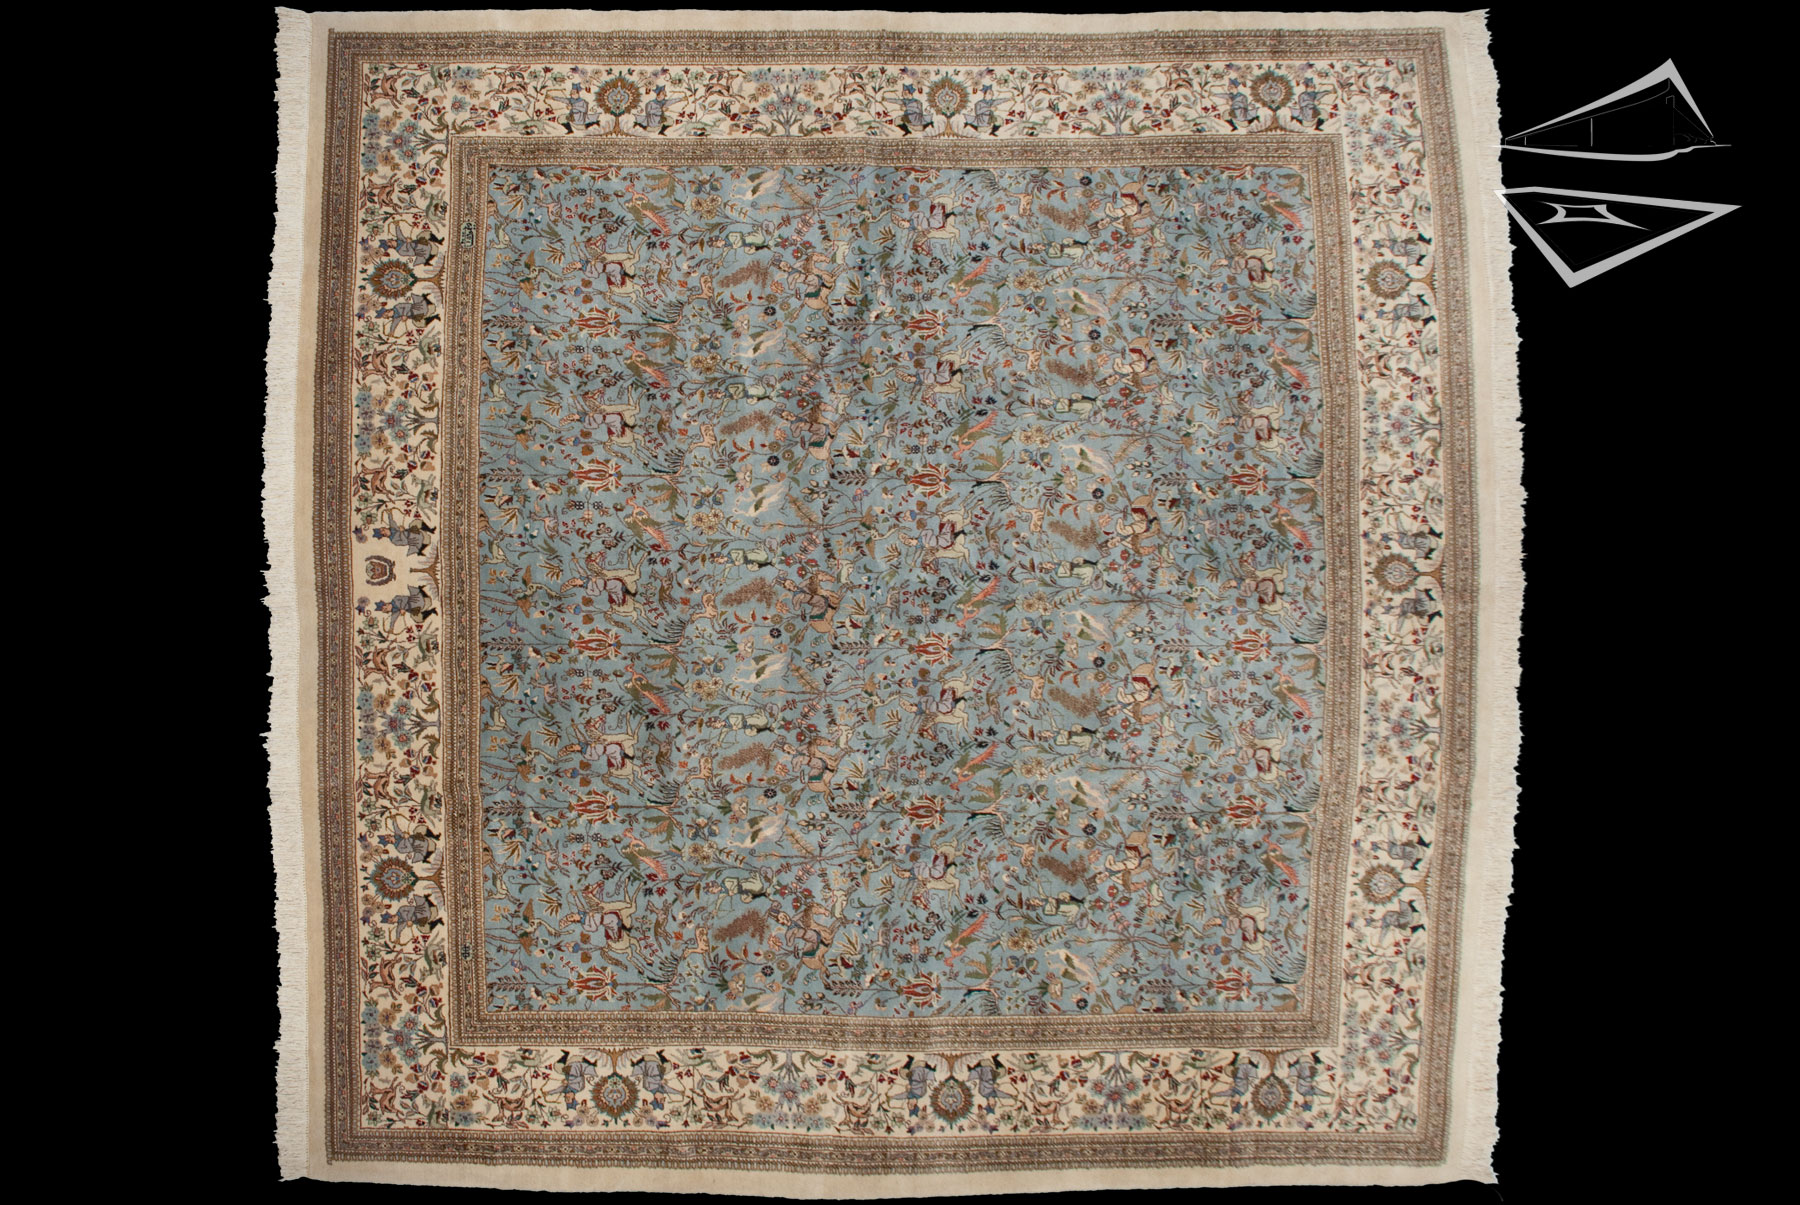 Square persian cyrus crown tabriz rug 12 39 x 12 39 for What size rug for 12x12 room